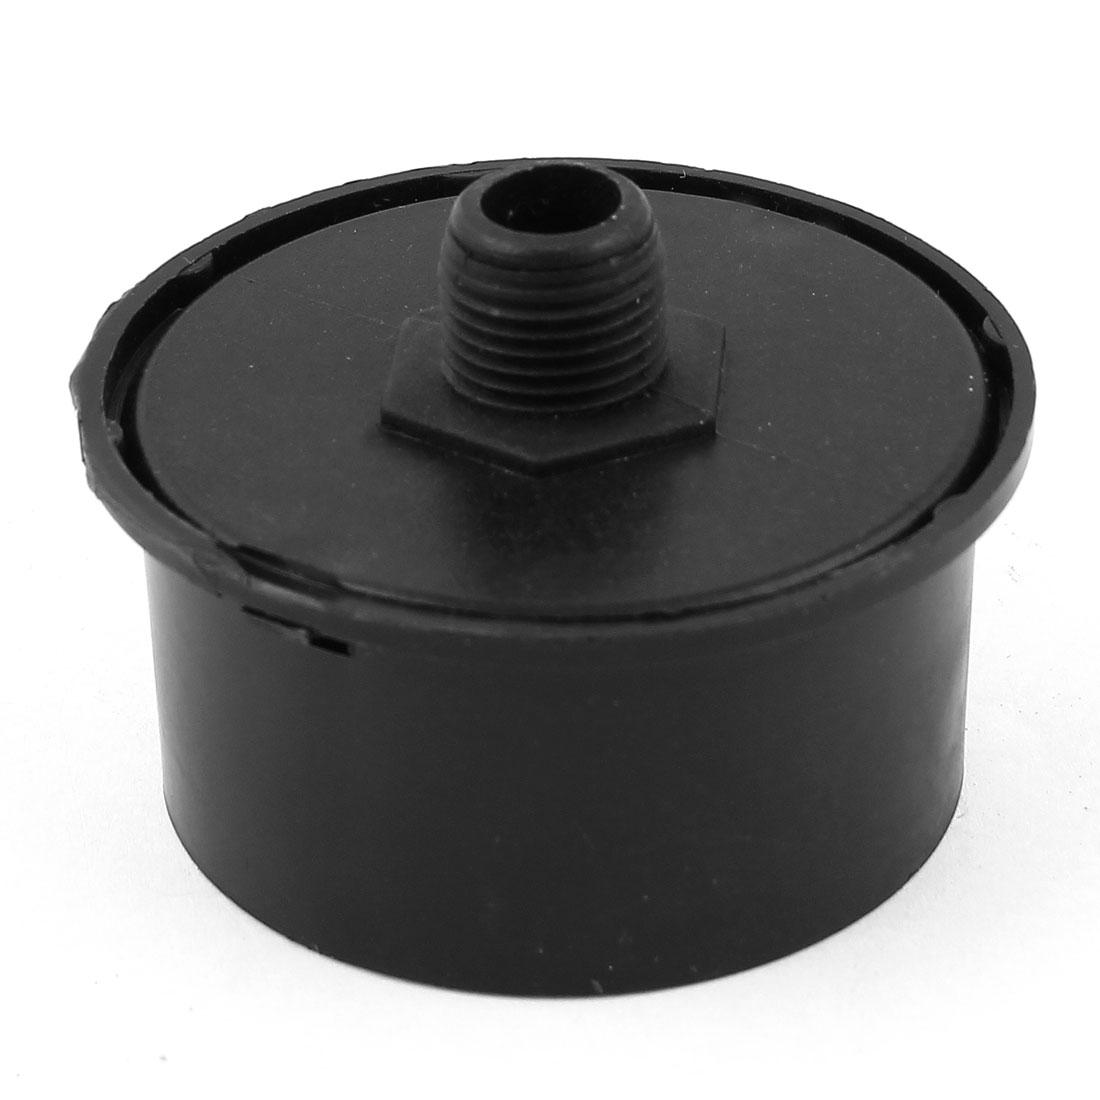 Black 3/8PT Male Thread Inlet Filter Silencer Muffler for Air Compressor